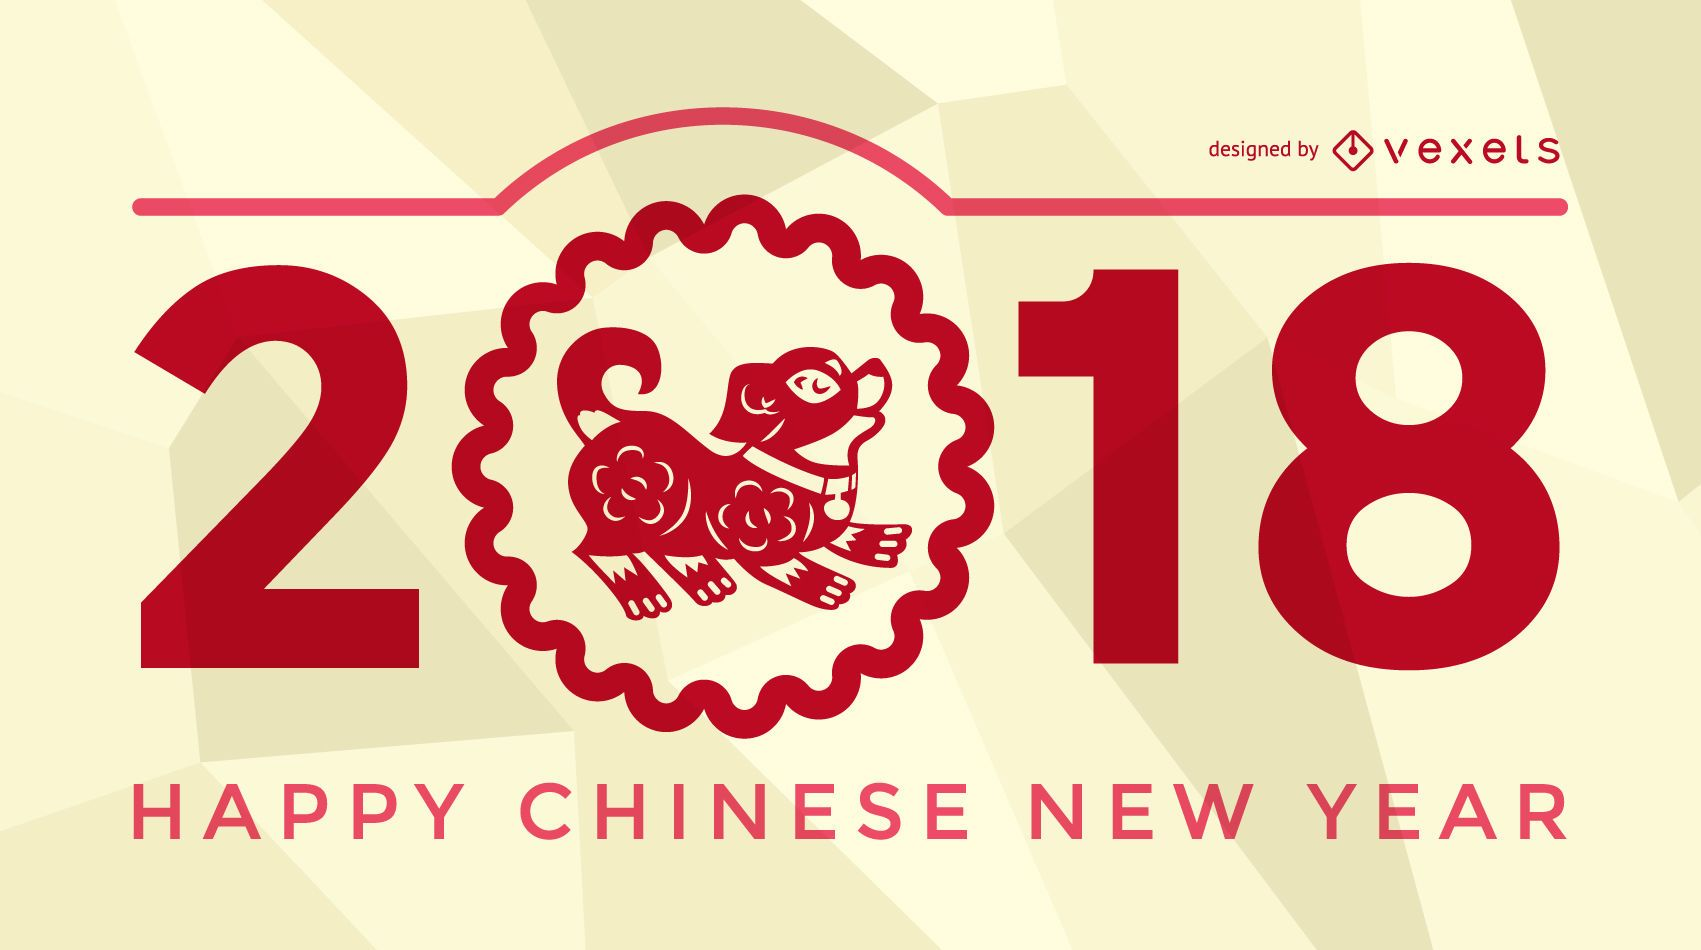 festive 2018 chinese new year poster download large image 1701x950px license image user - 2018 Chinese New Year